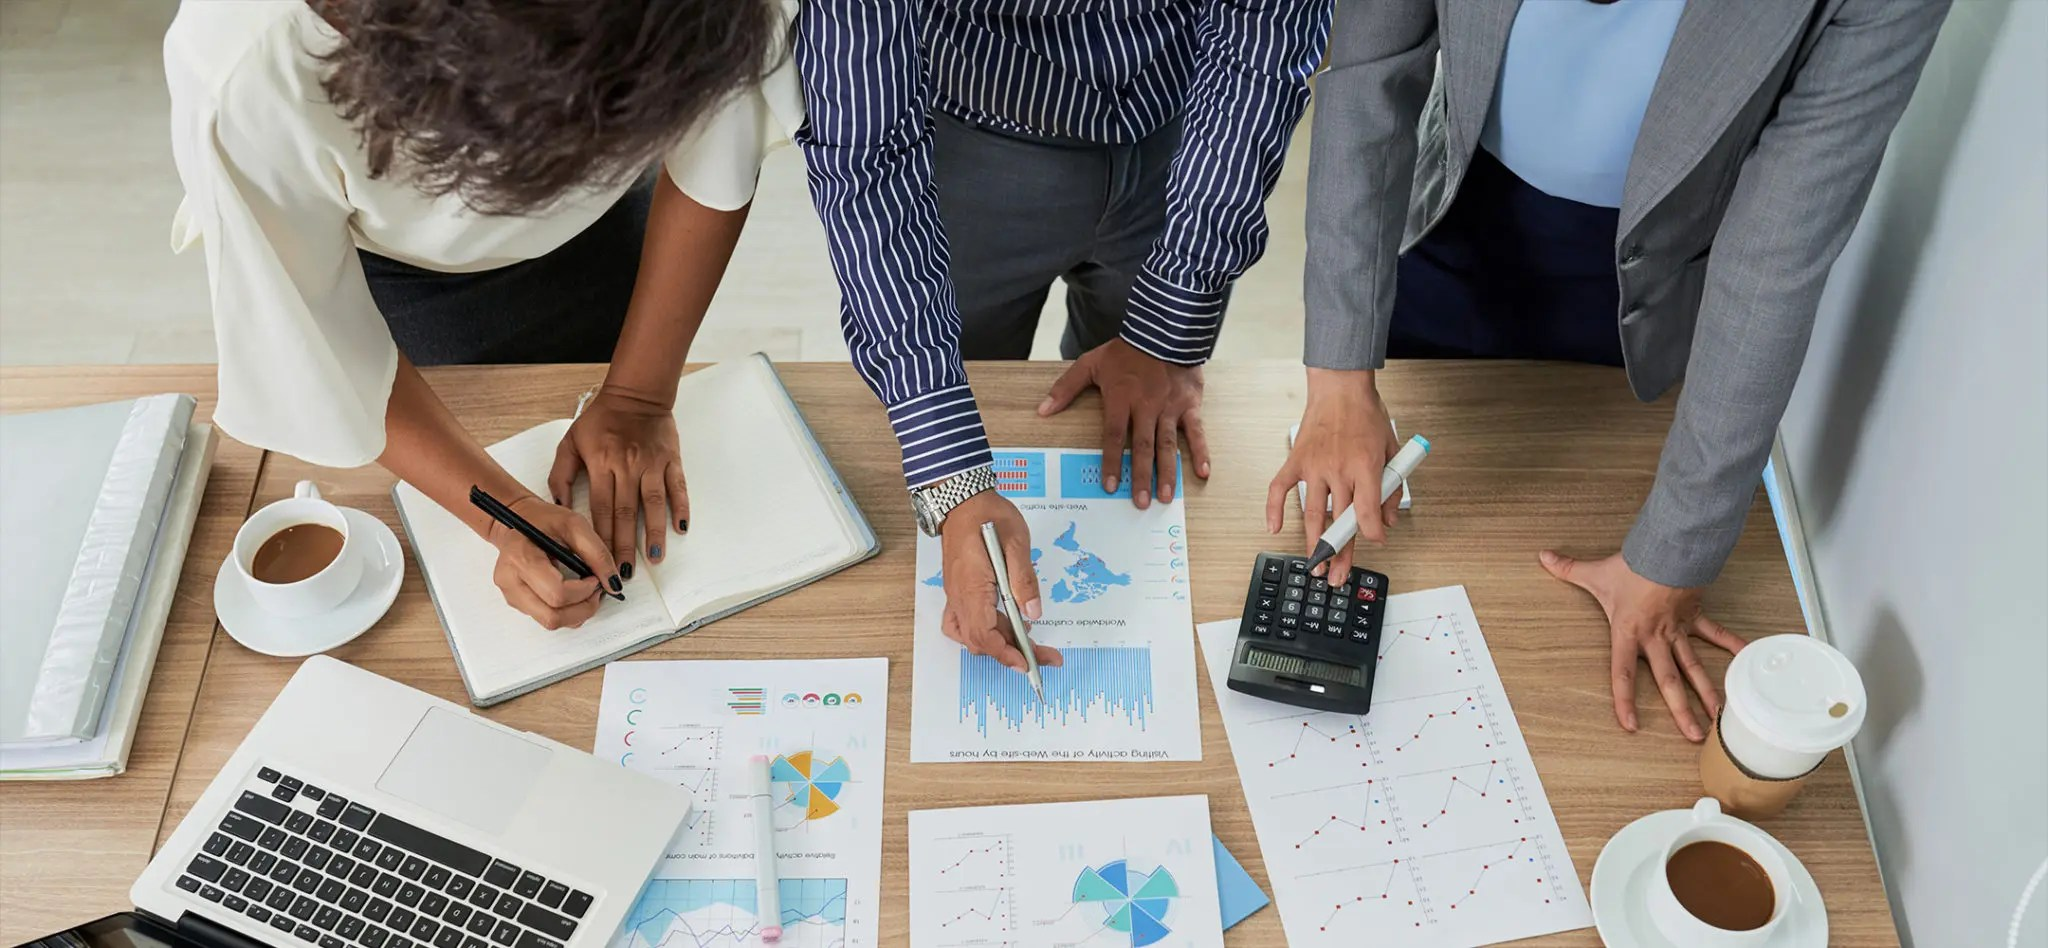 Three coworkers standing over a table analyzing charts and graphs during a meeting